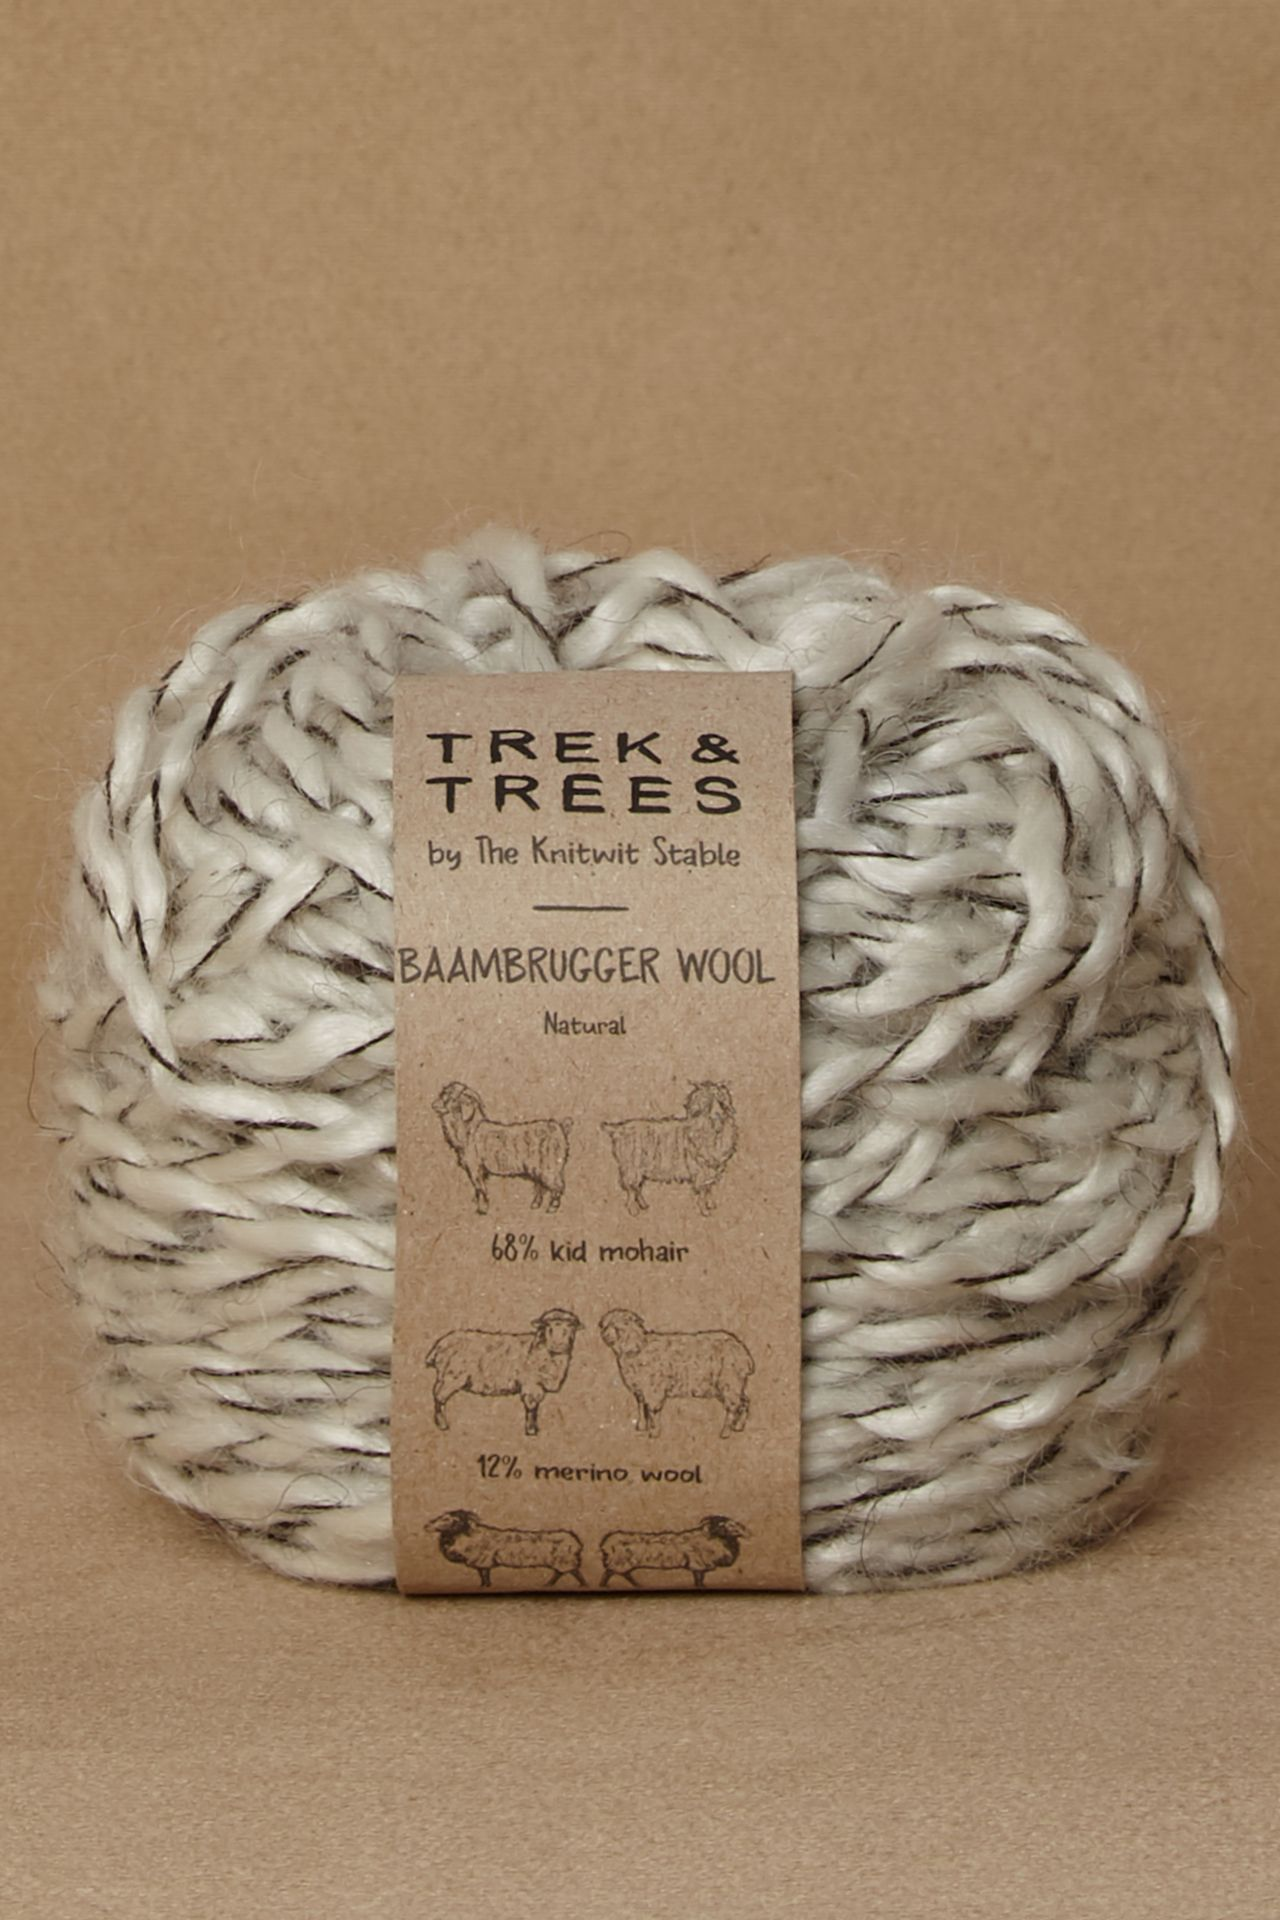 Baambrugge wool packshot.